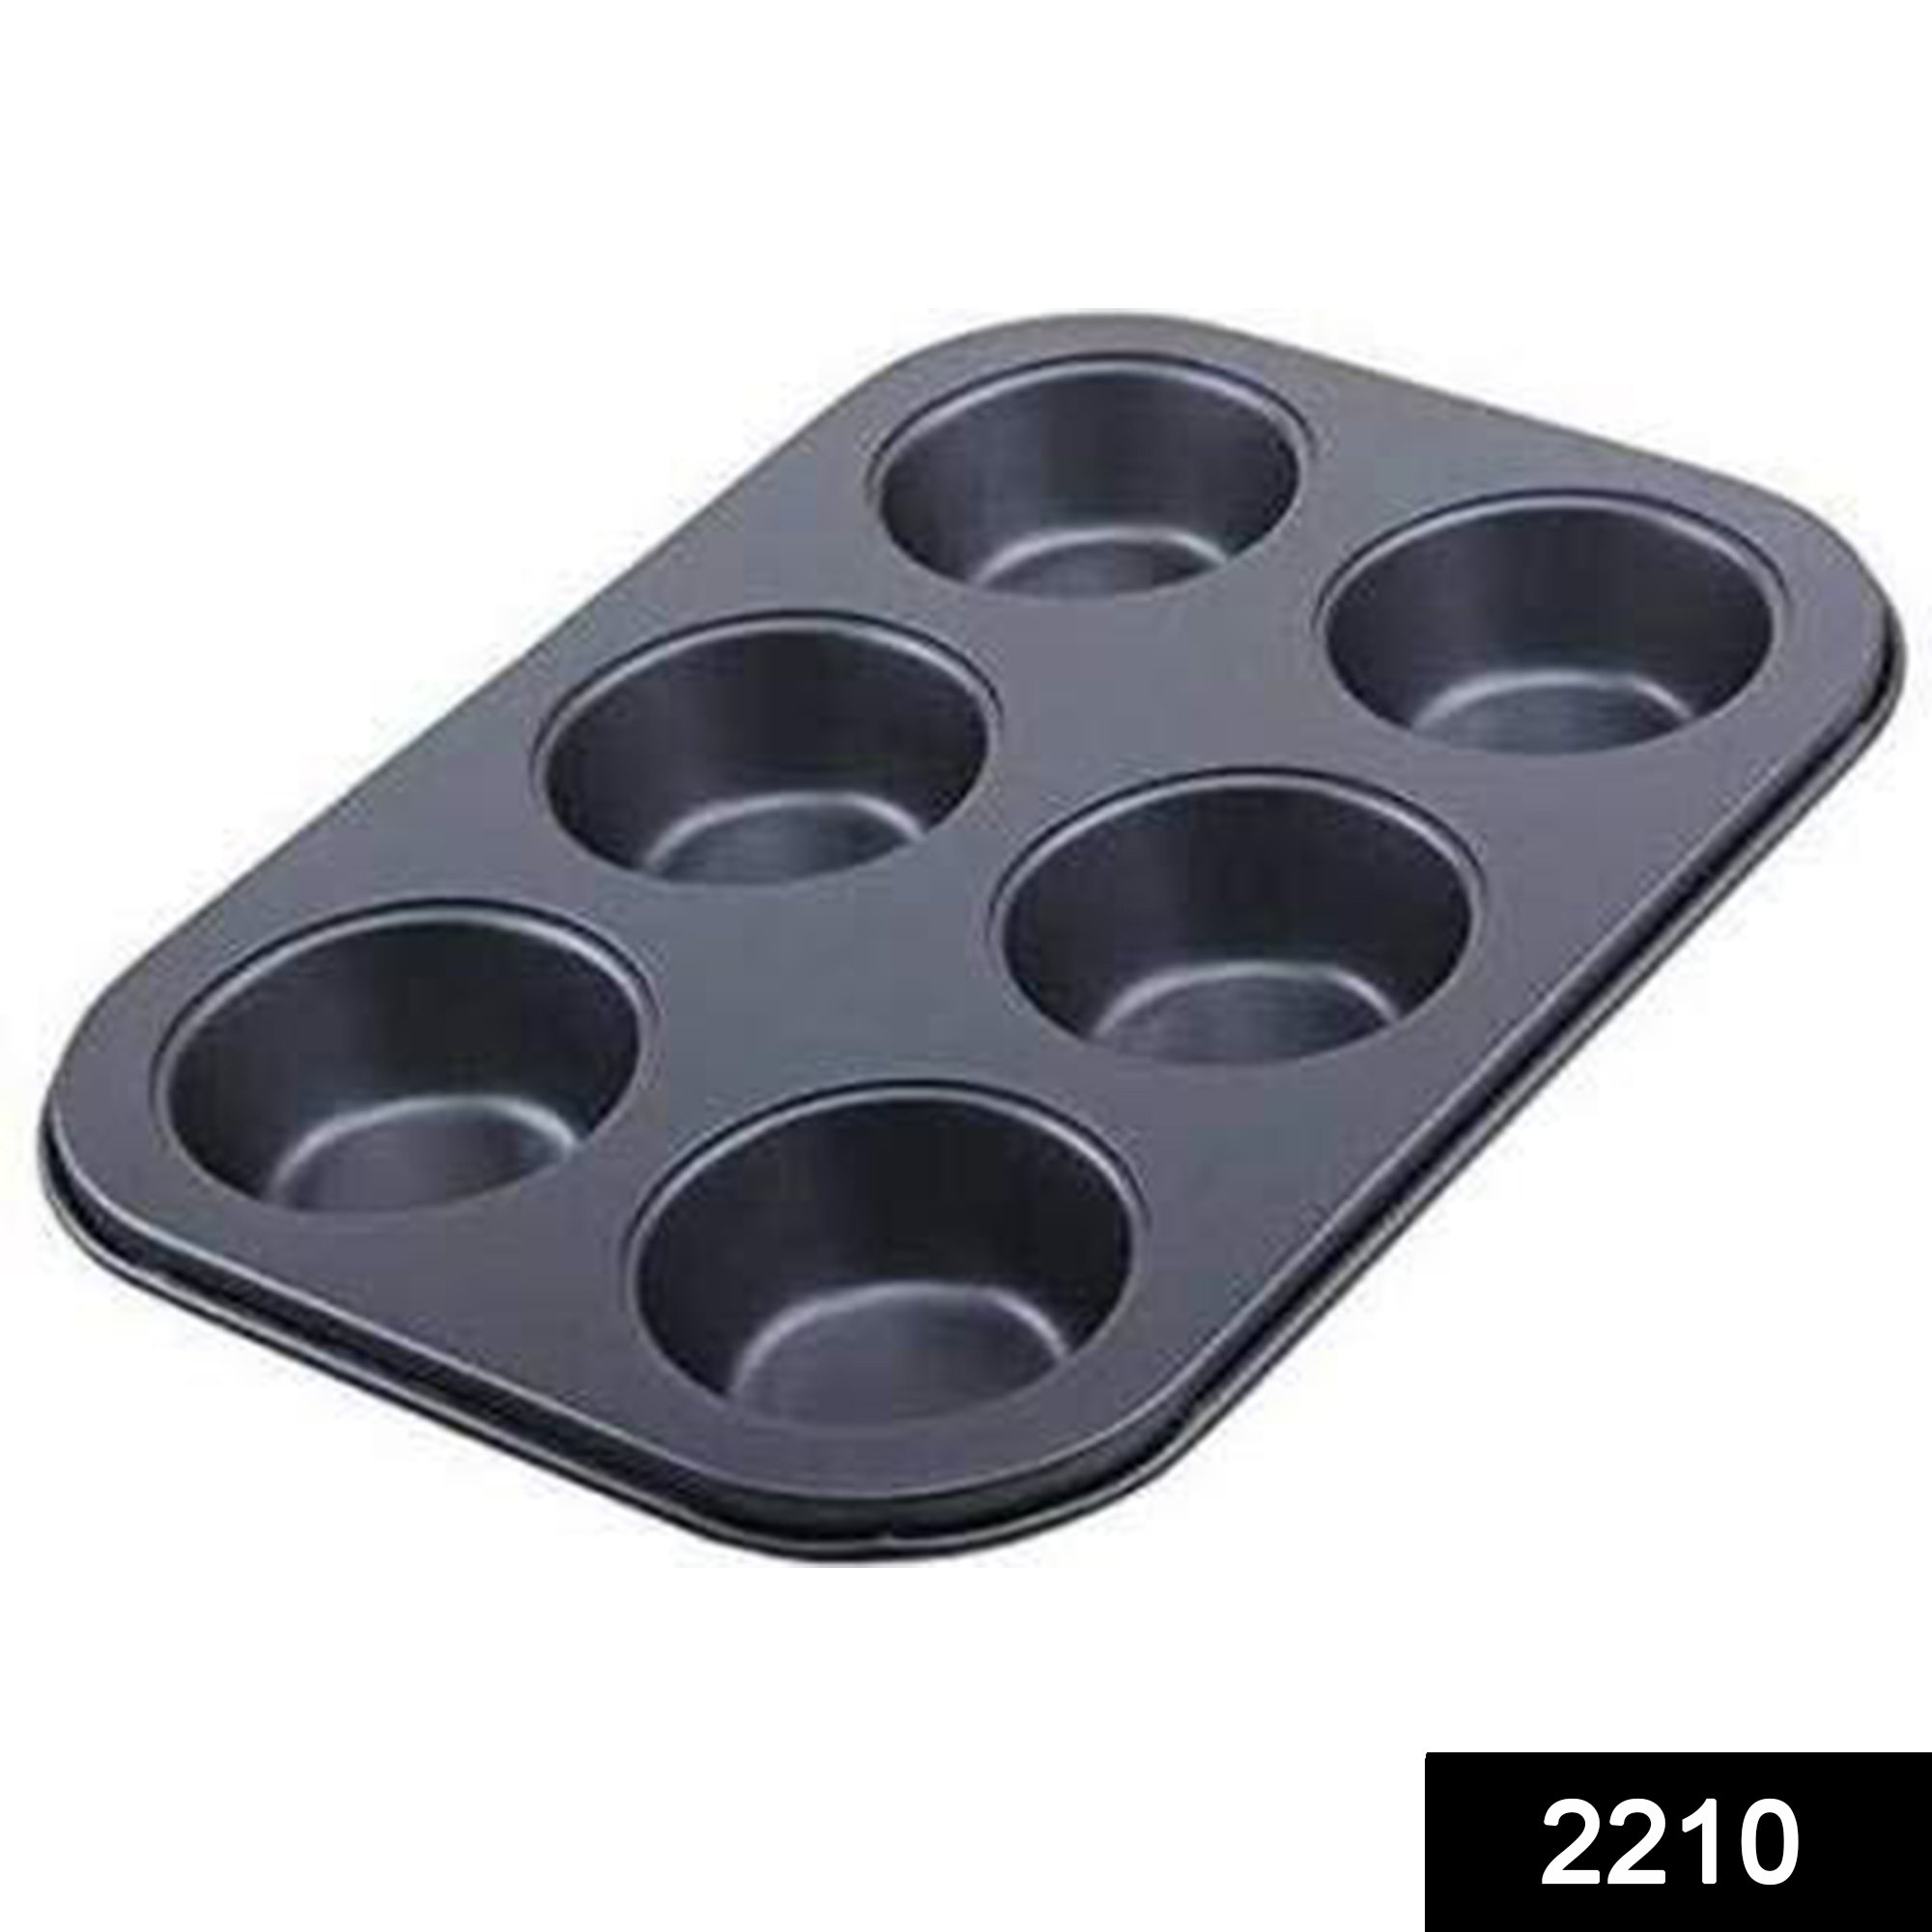 2210 Non-Stick Reusable Cupcake Baking Slot Tray for 6 Muffin Cup -